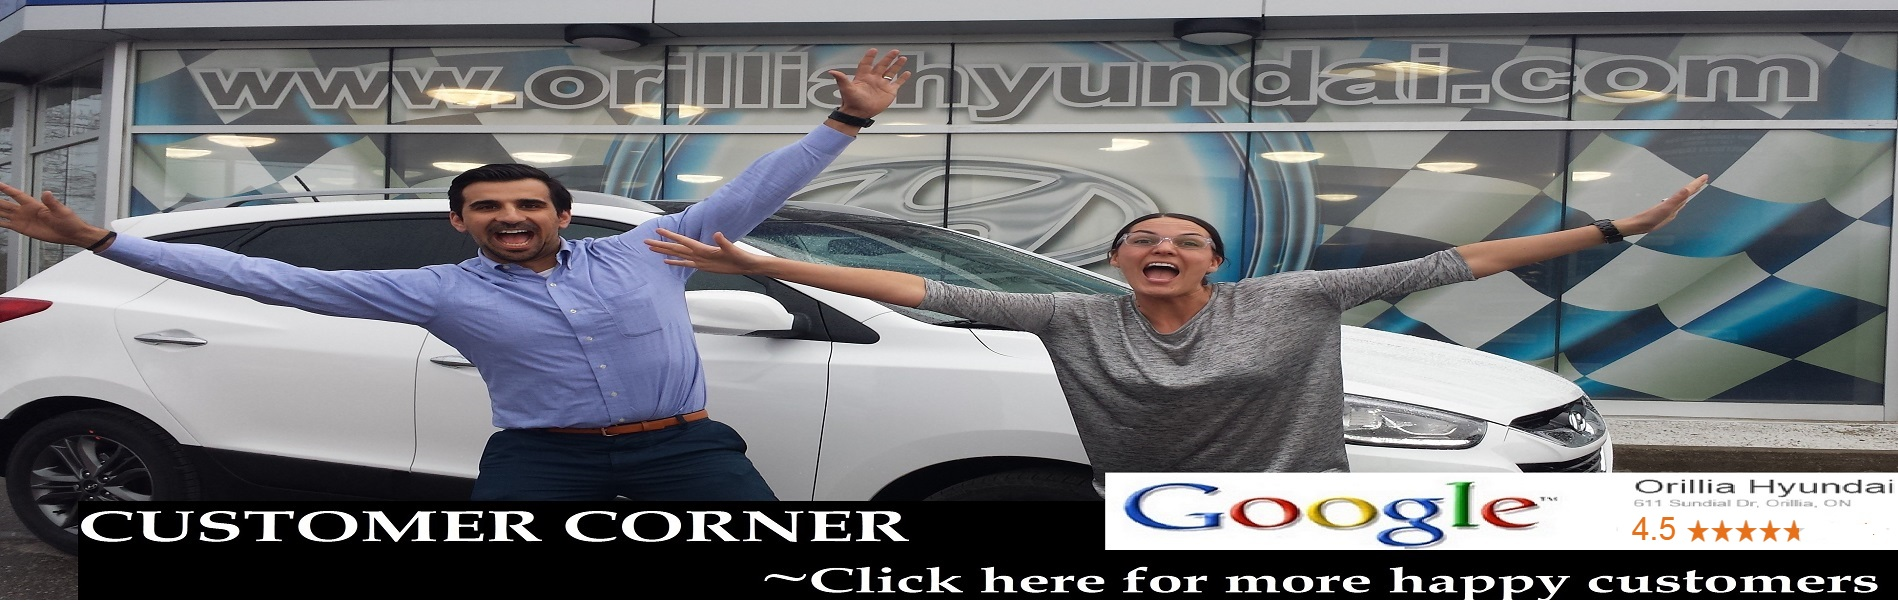 ORILLIA HYUNDAI REVIEWS